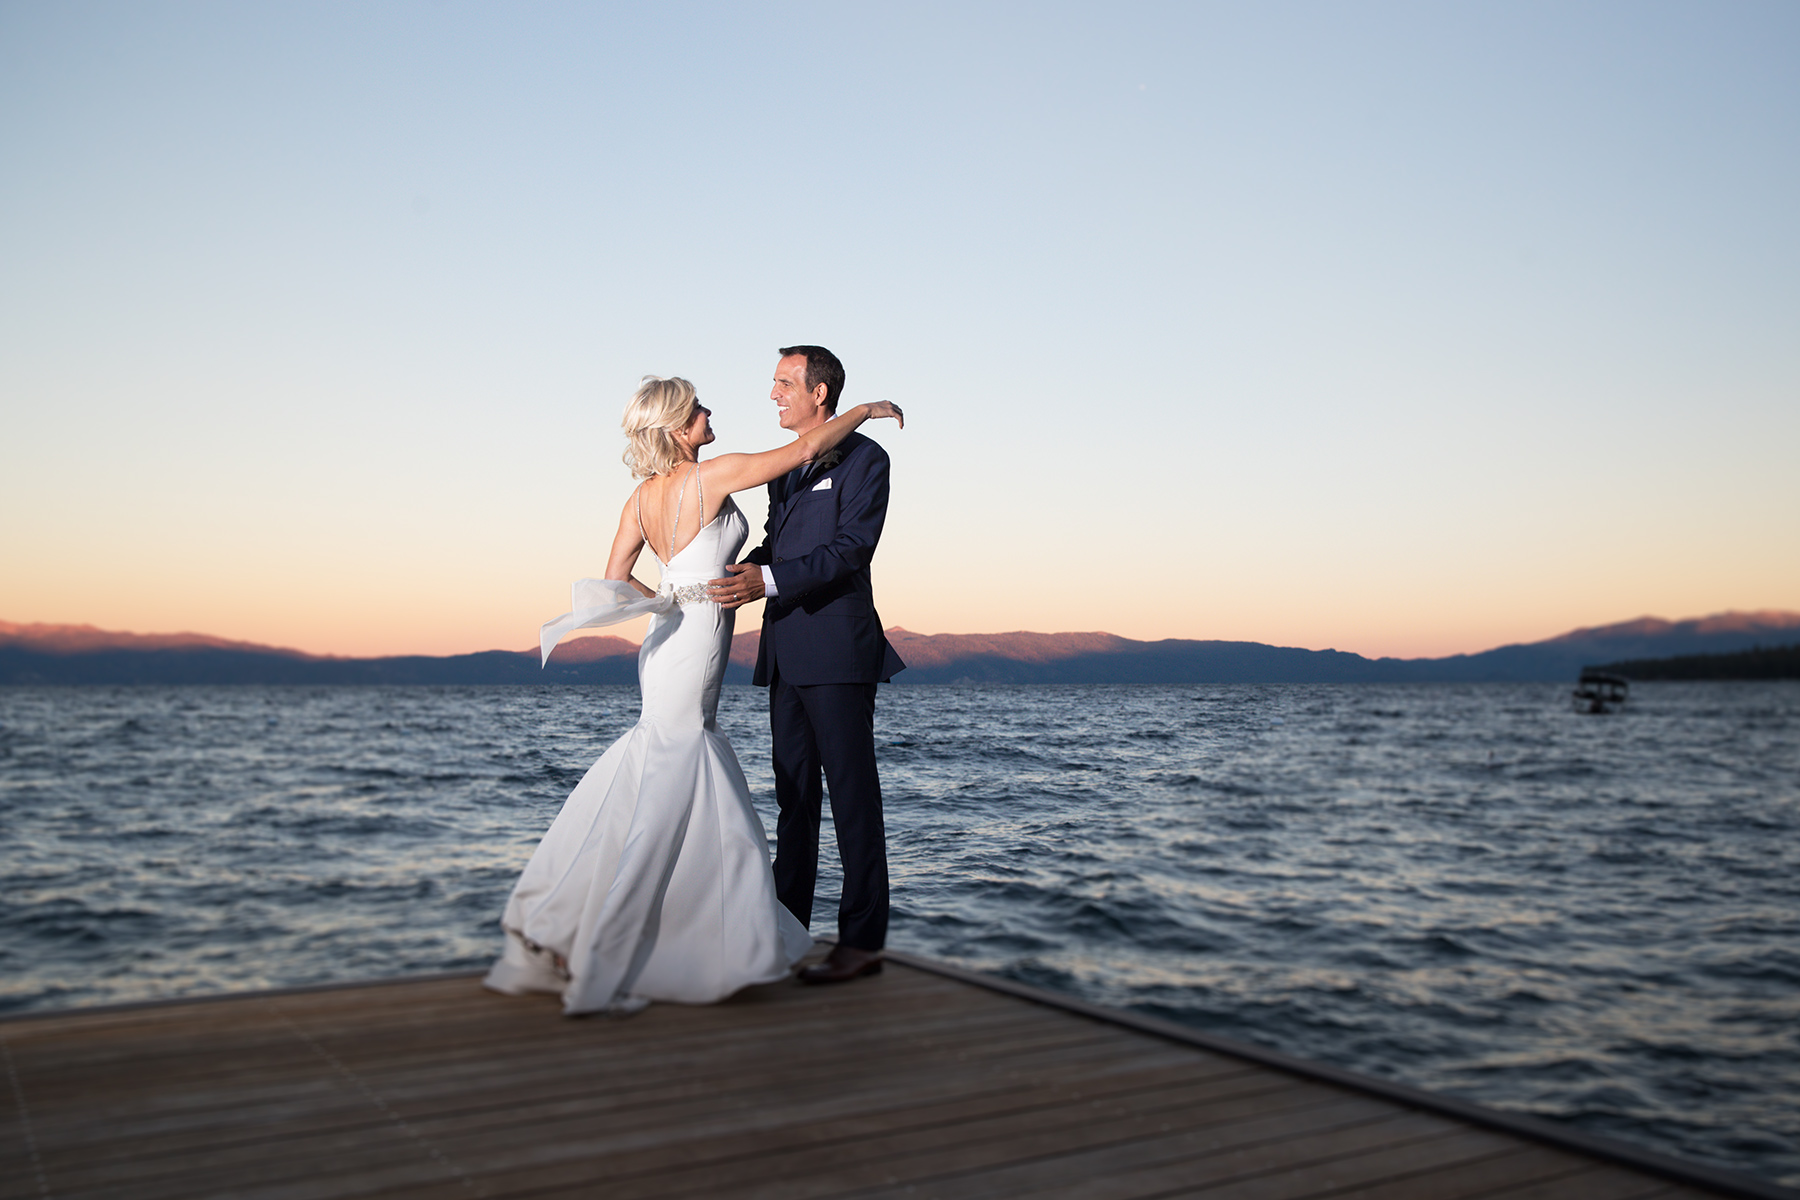 Tahoe-sunset-pier-at-West-Shore-Cafe-wedding